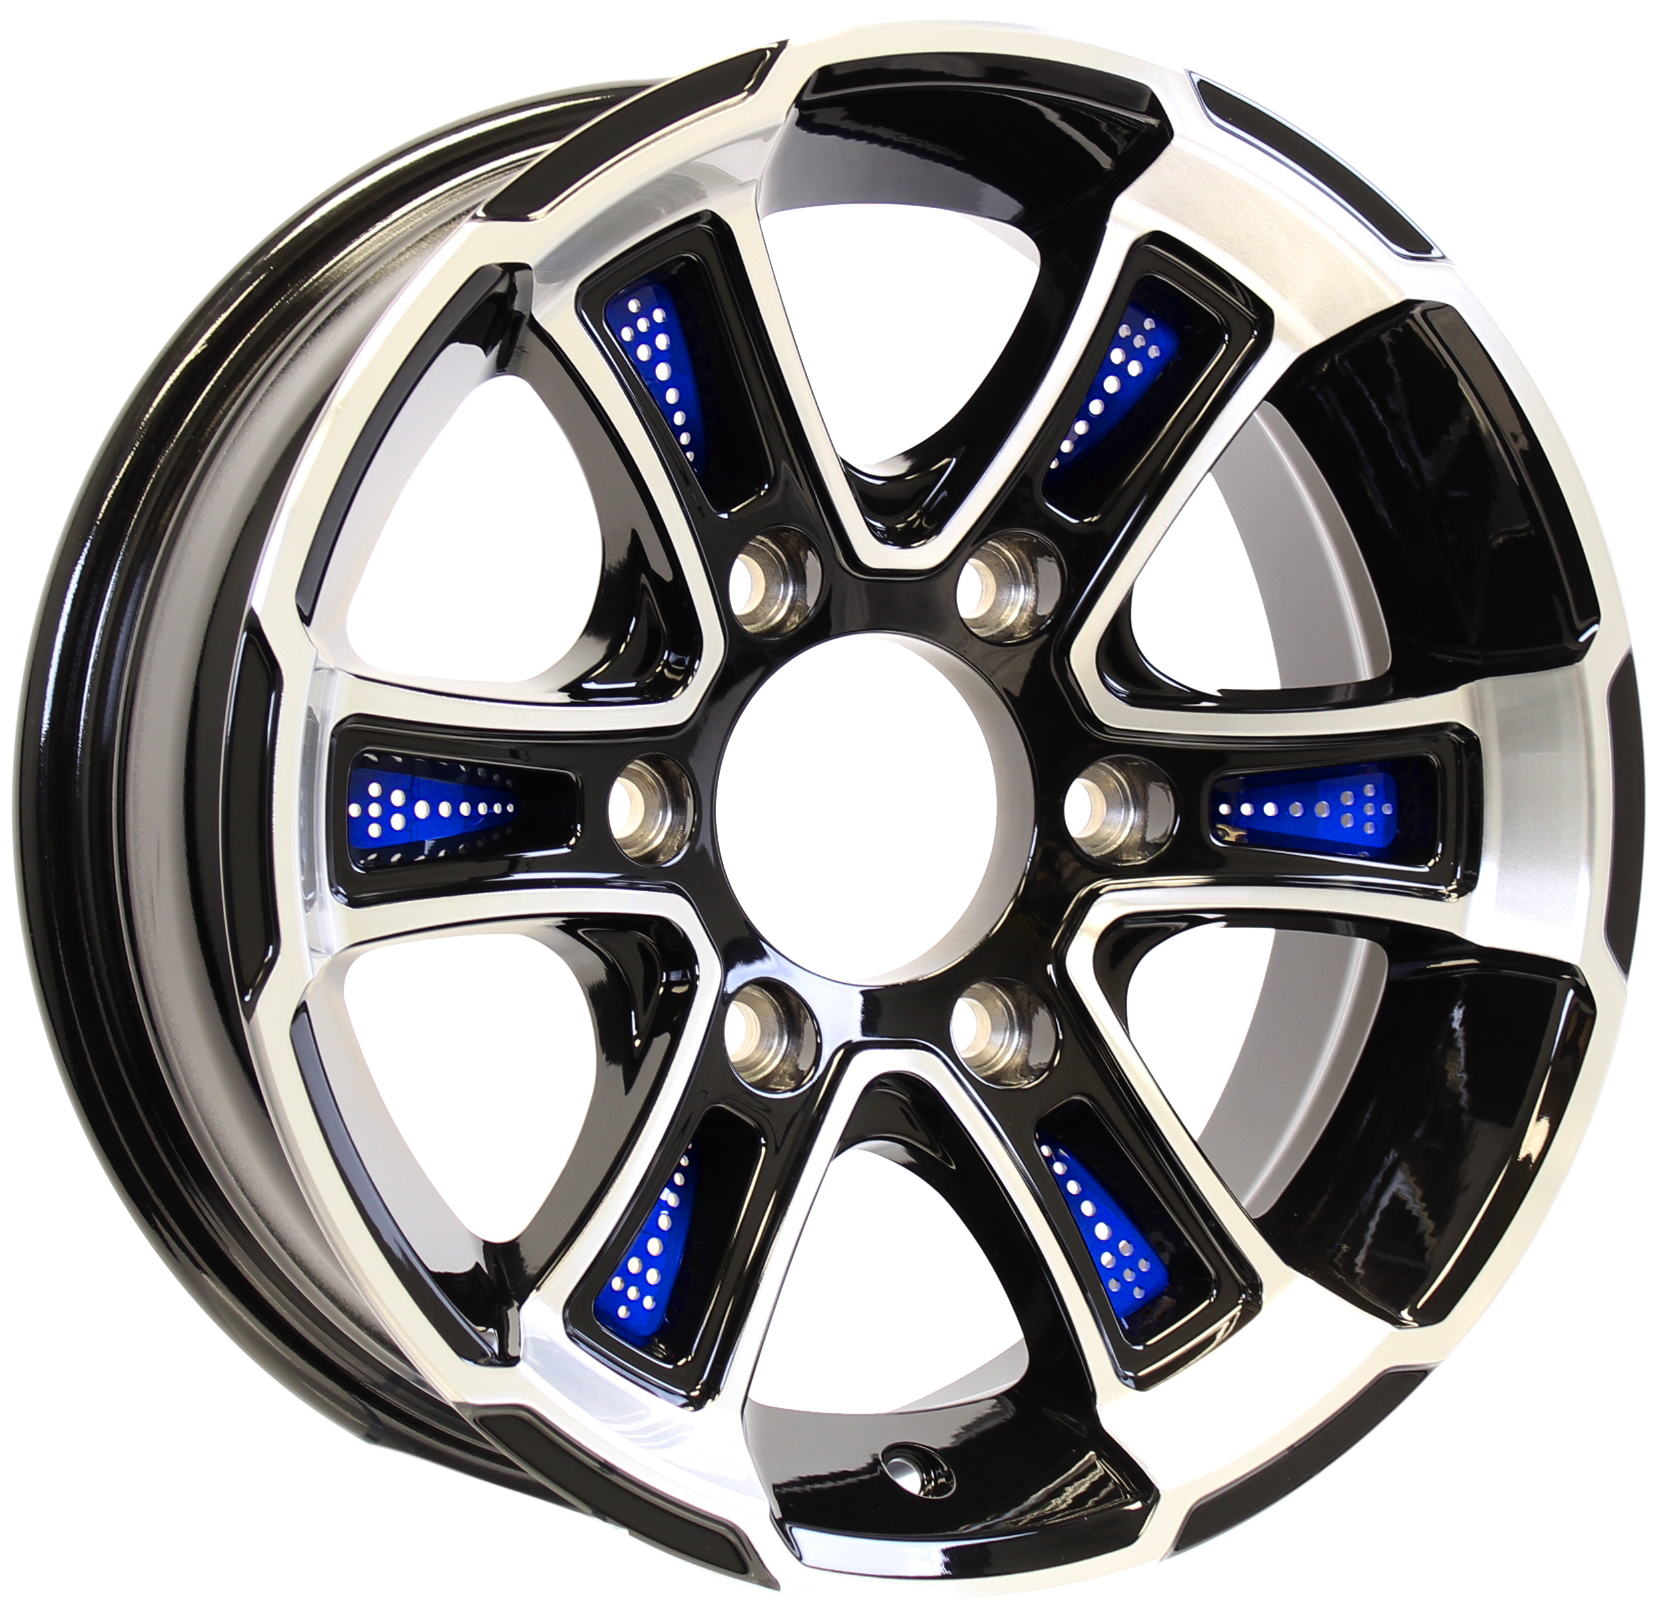 Whitehawk 15x6 6-5.5 Black Aluminum Trailer Wheel with Blue Inserts Image